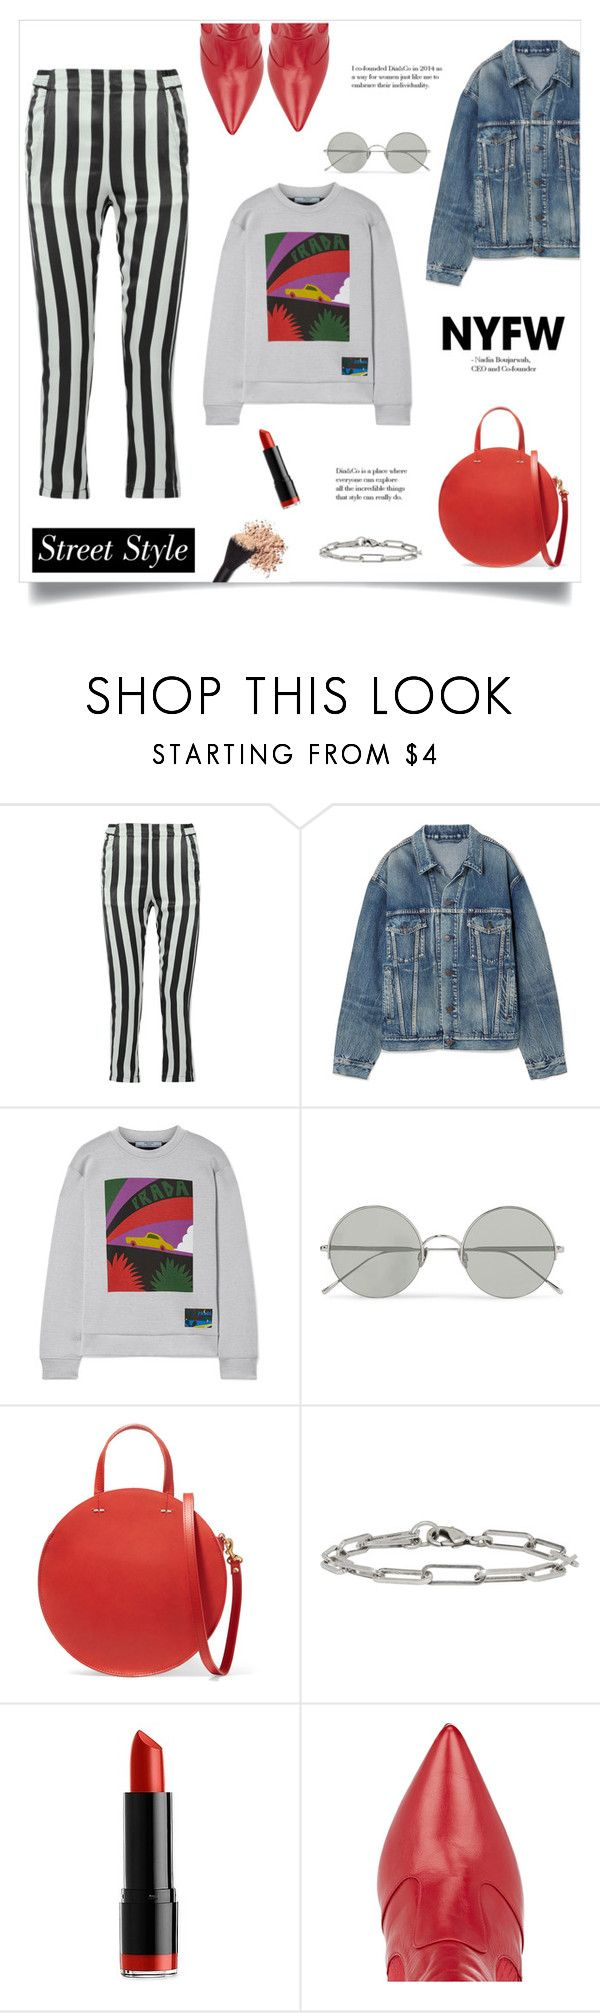 """""""Street Style!"""" by diane1234 on Polyvore featuring Ann Demeulemeester, Balenciaga, Prada, Sunday Somewhere, Clare V., Isabel Marant, NYX, Fendi, contestentry and trendreport"""